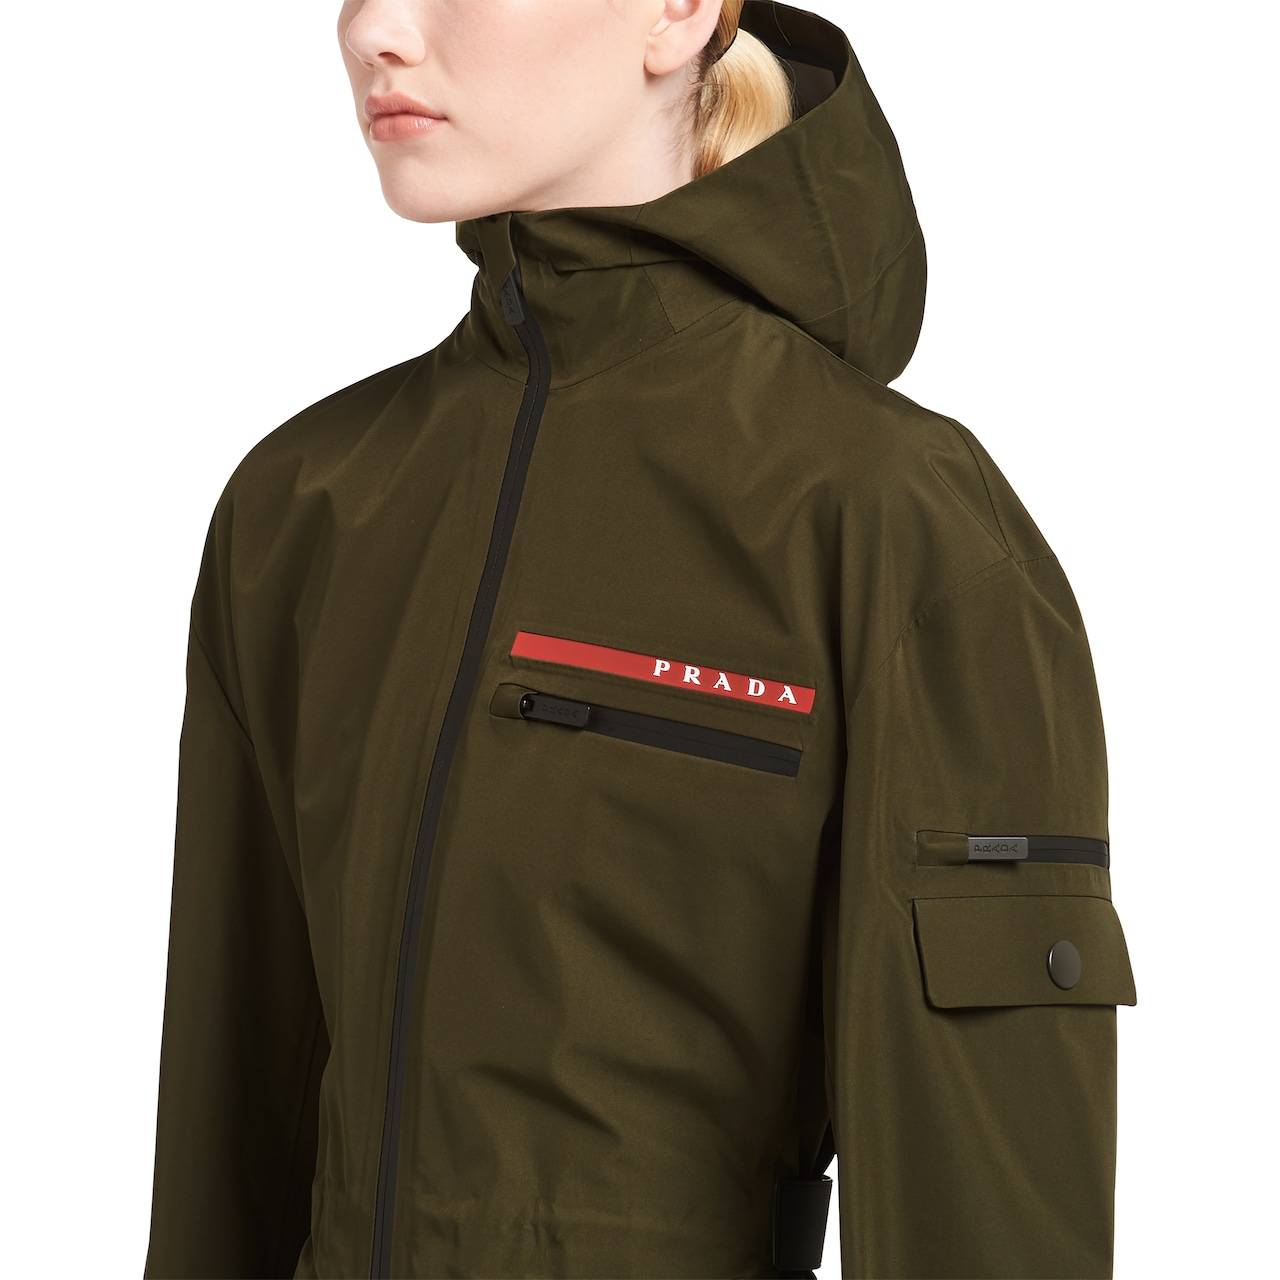 Prada LR-MX18 technical GORE-TEX PRO nylon fabric caban jacket 5